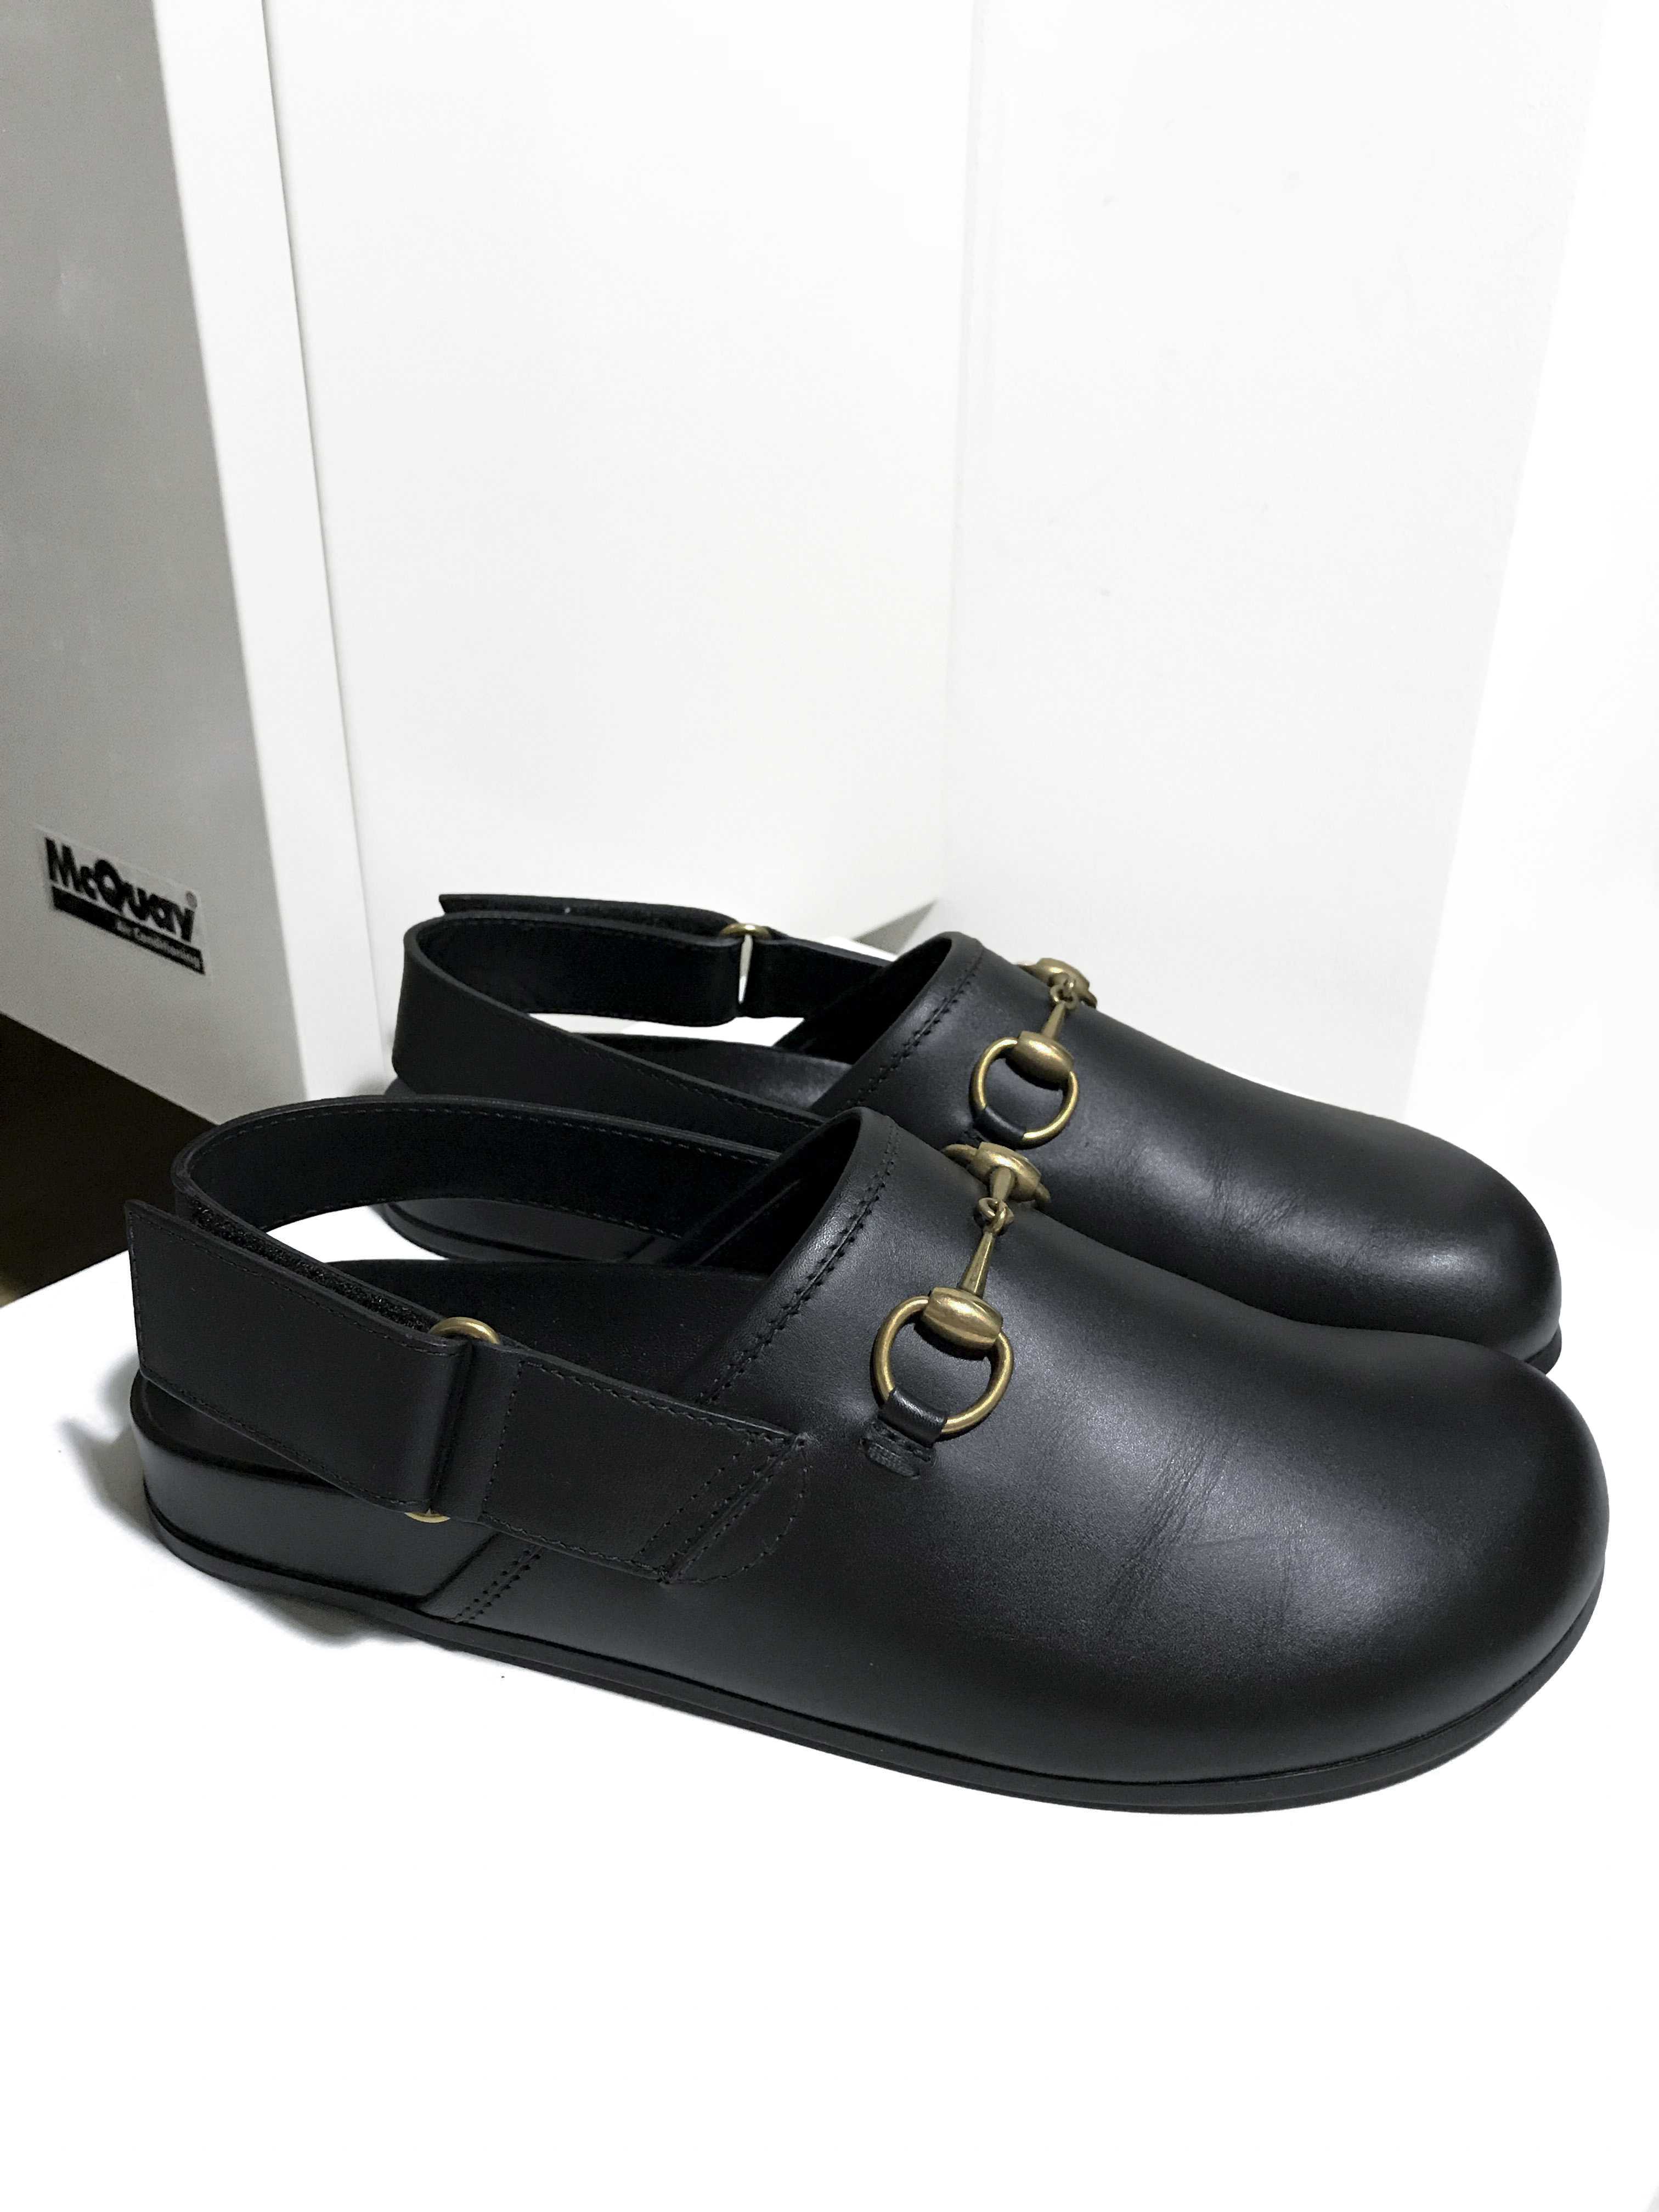 69a5a6b25 Gucci ×. Black Leather Horsebit River Slingback Mules Clog Slide Princetown